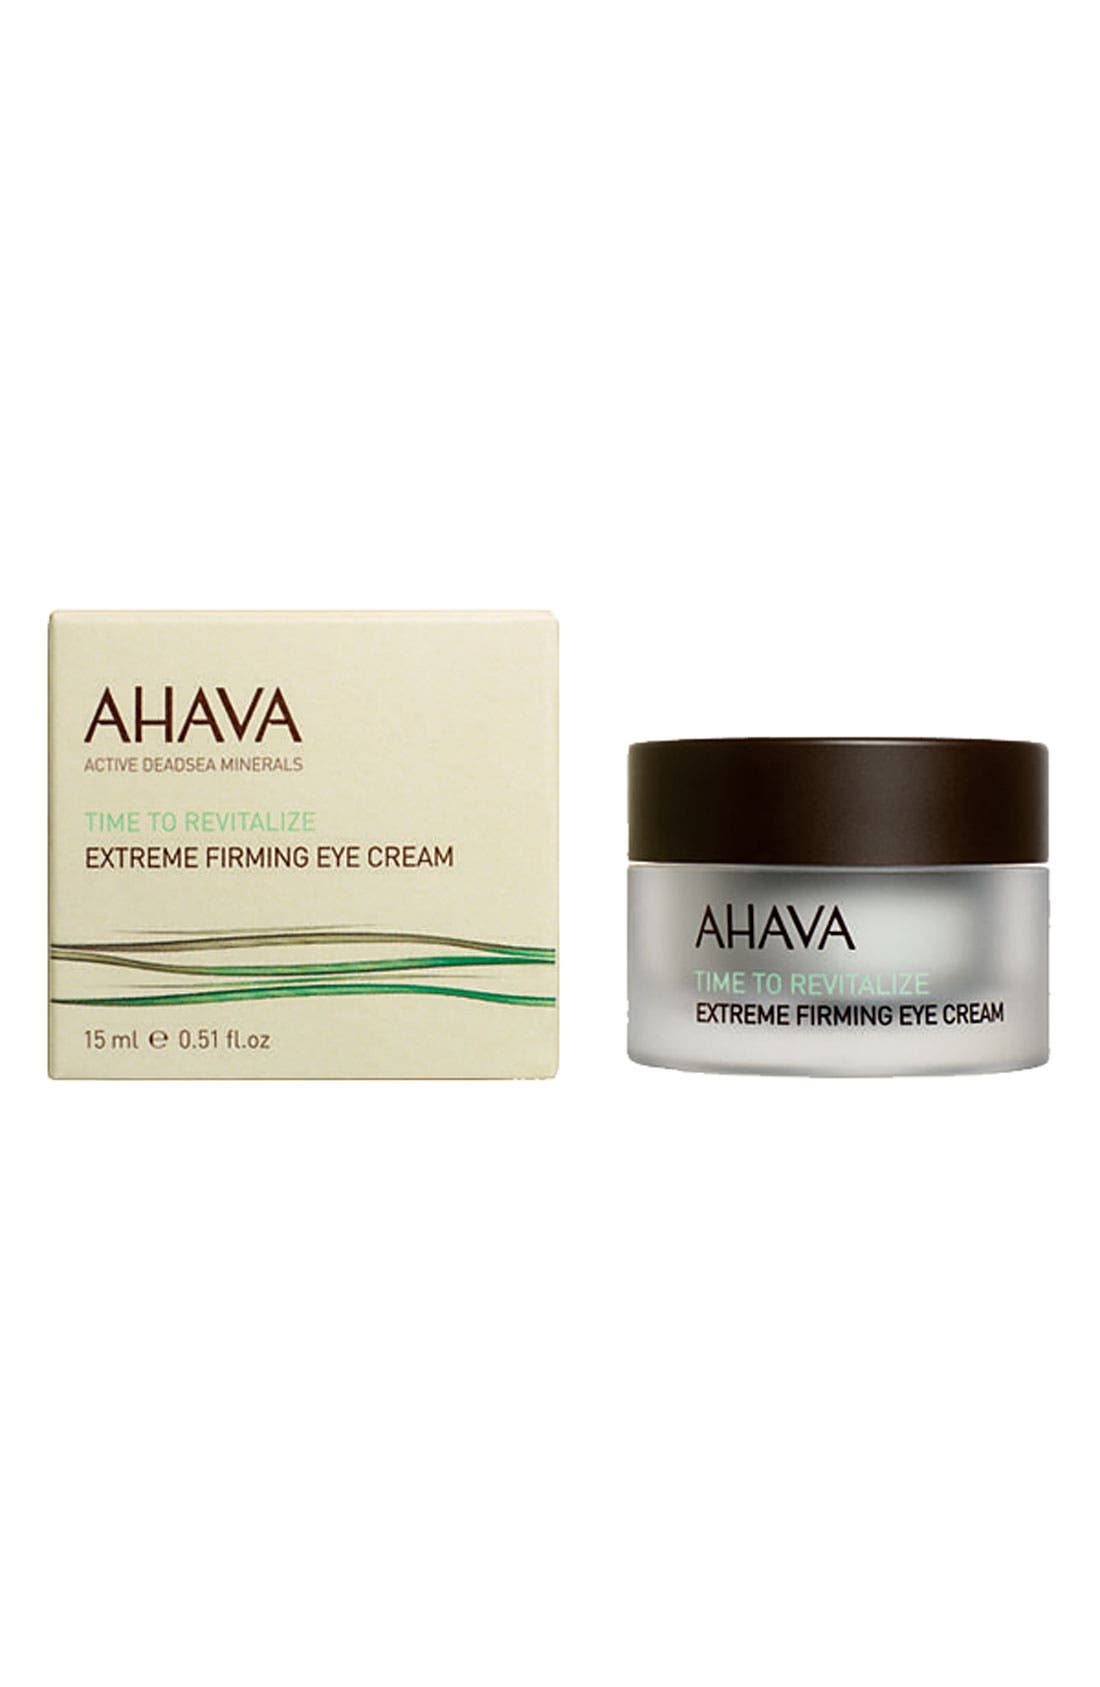 'Time to Revitalize' Extreme Firming Eye Cream,                             Main thumbnail 1, color,                             000